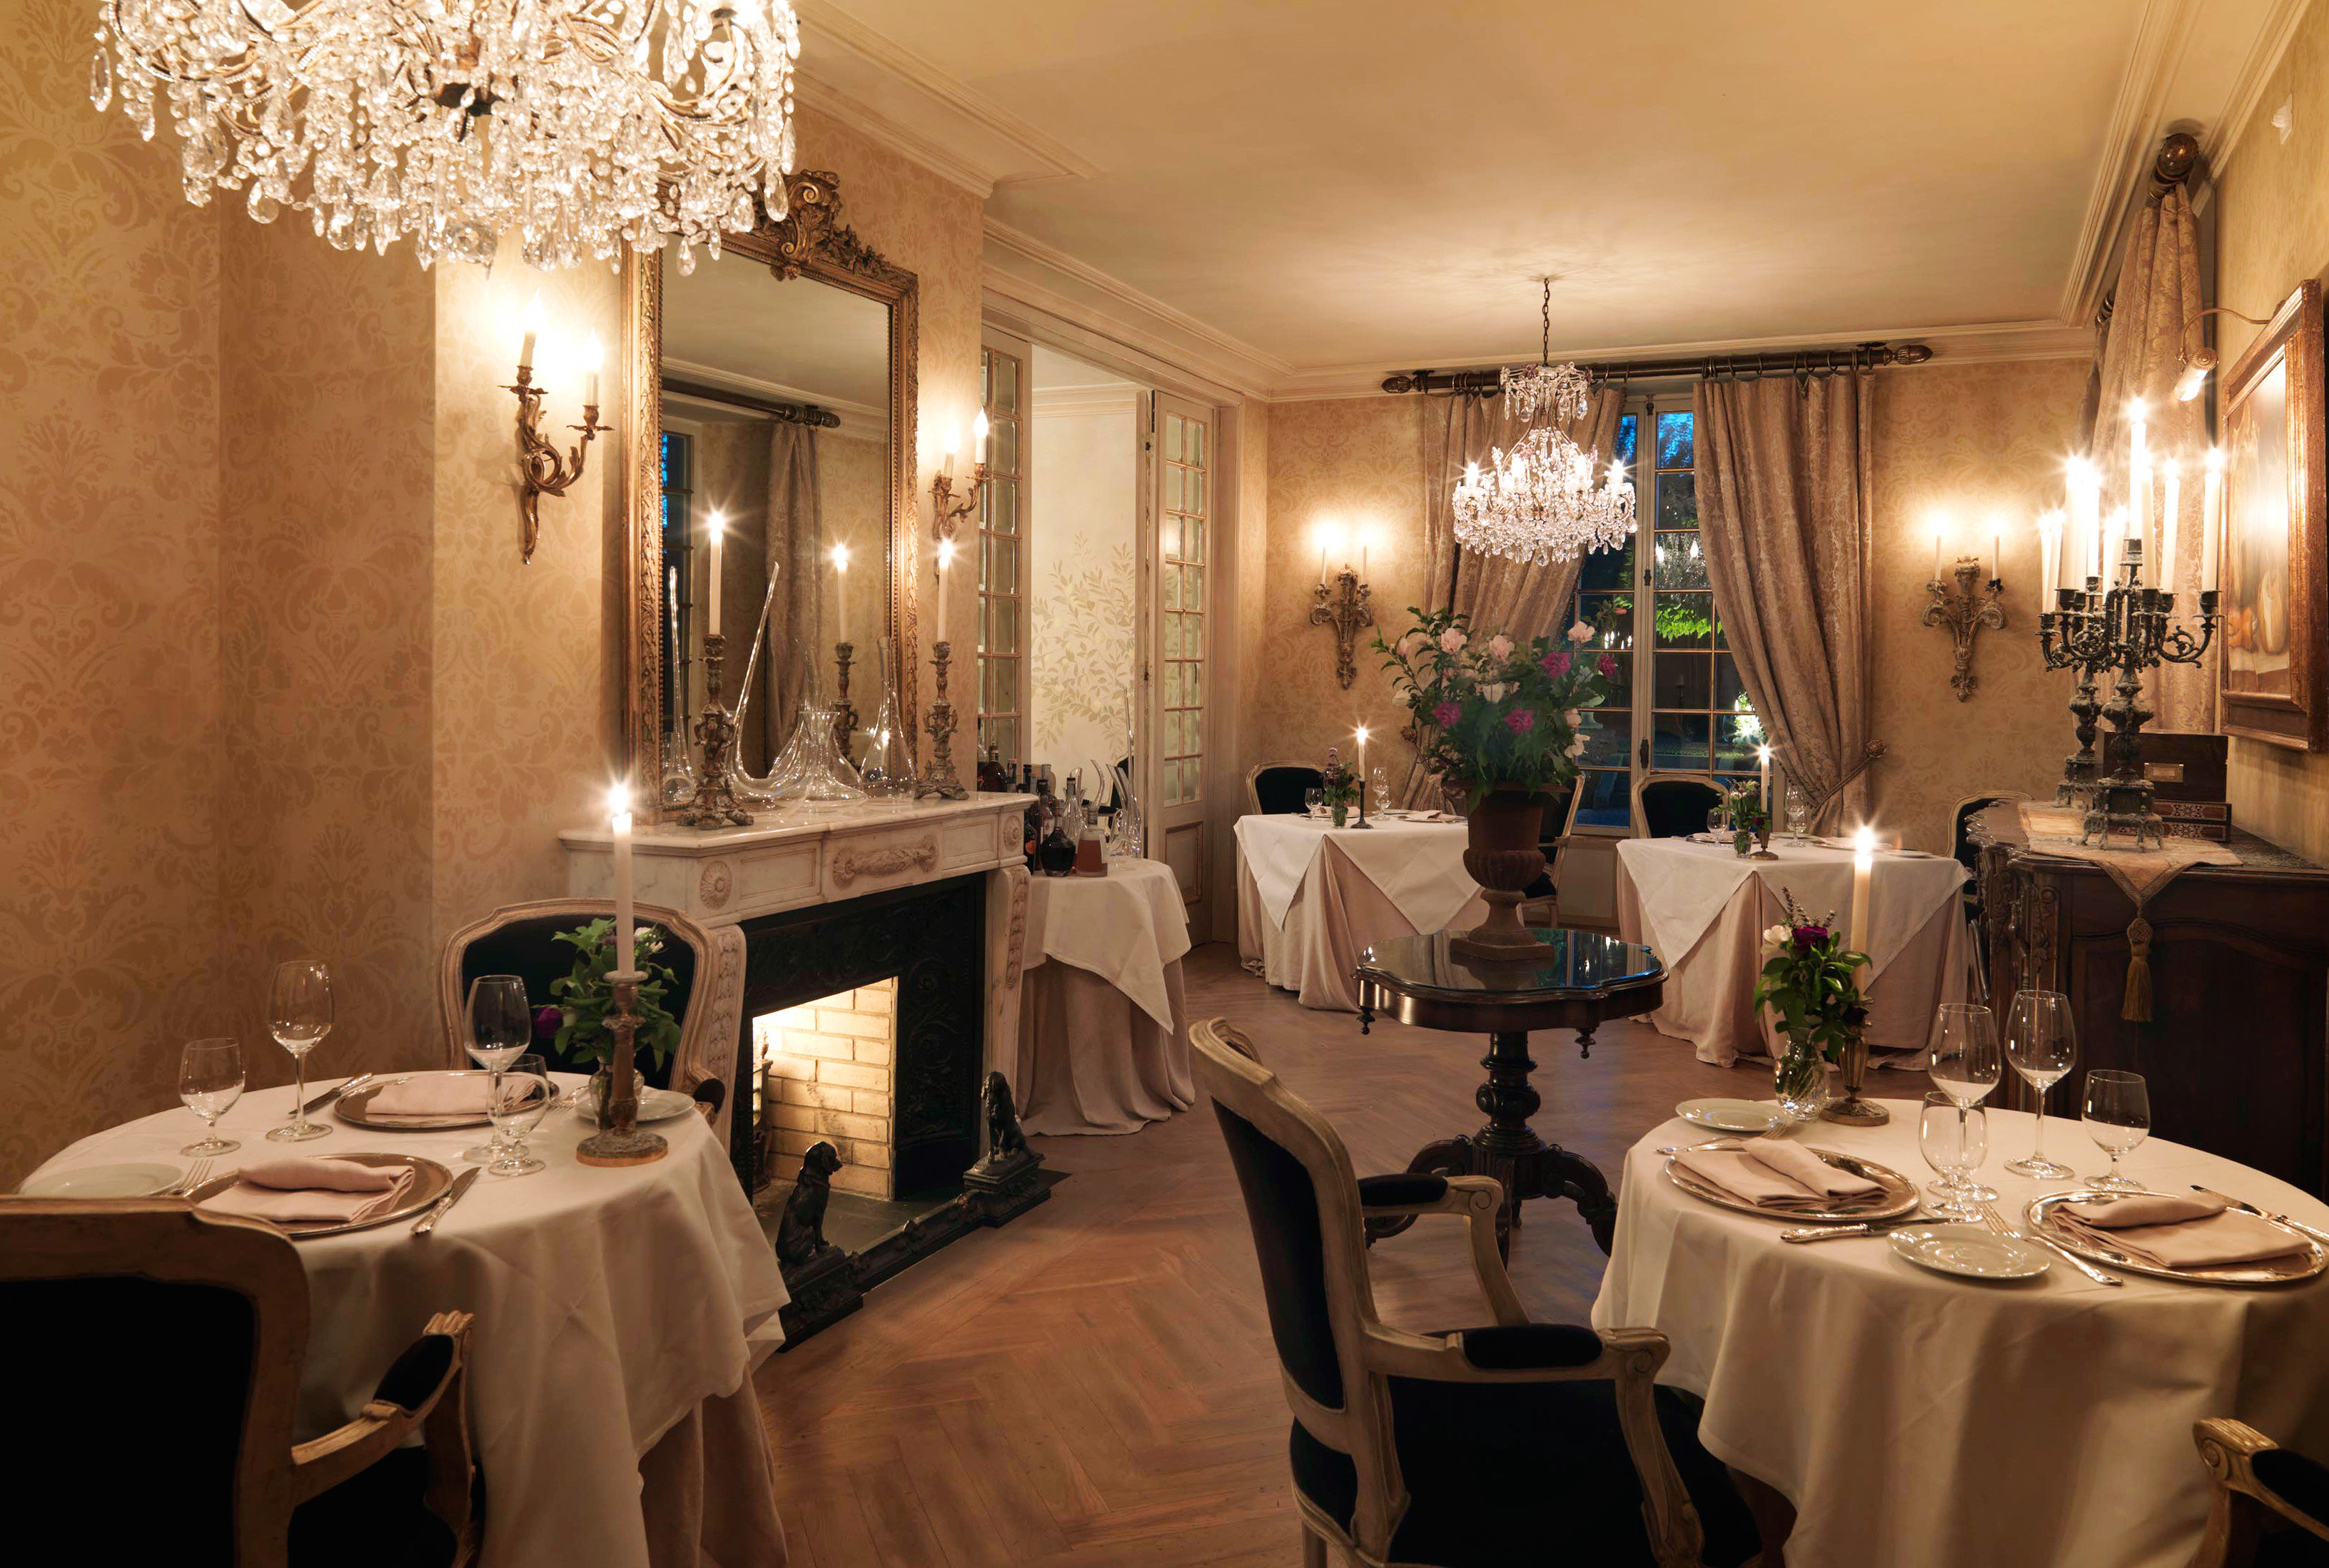 Country Cultural Dining Drink Eat Elegant Historic Patio restaurant lighting function hall sink fancy Bath